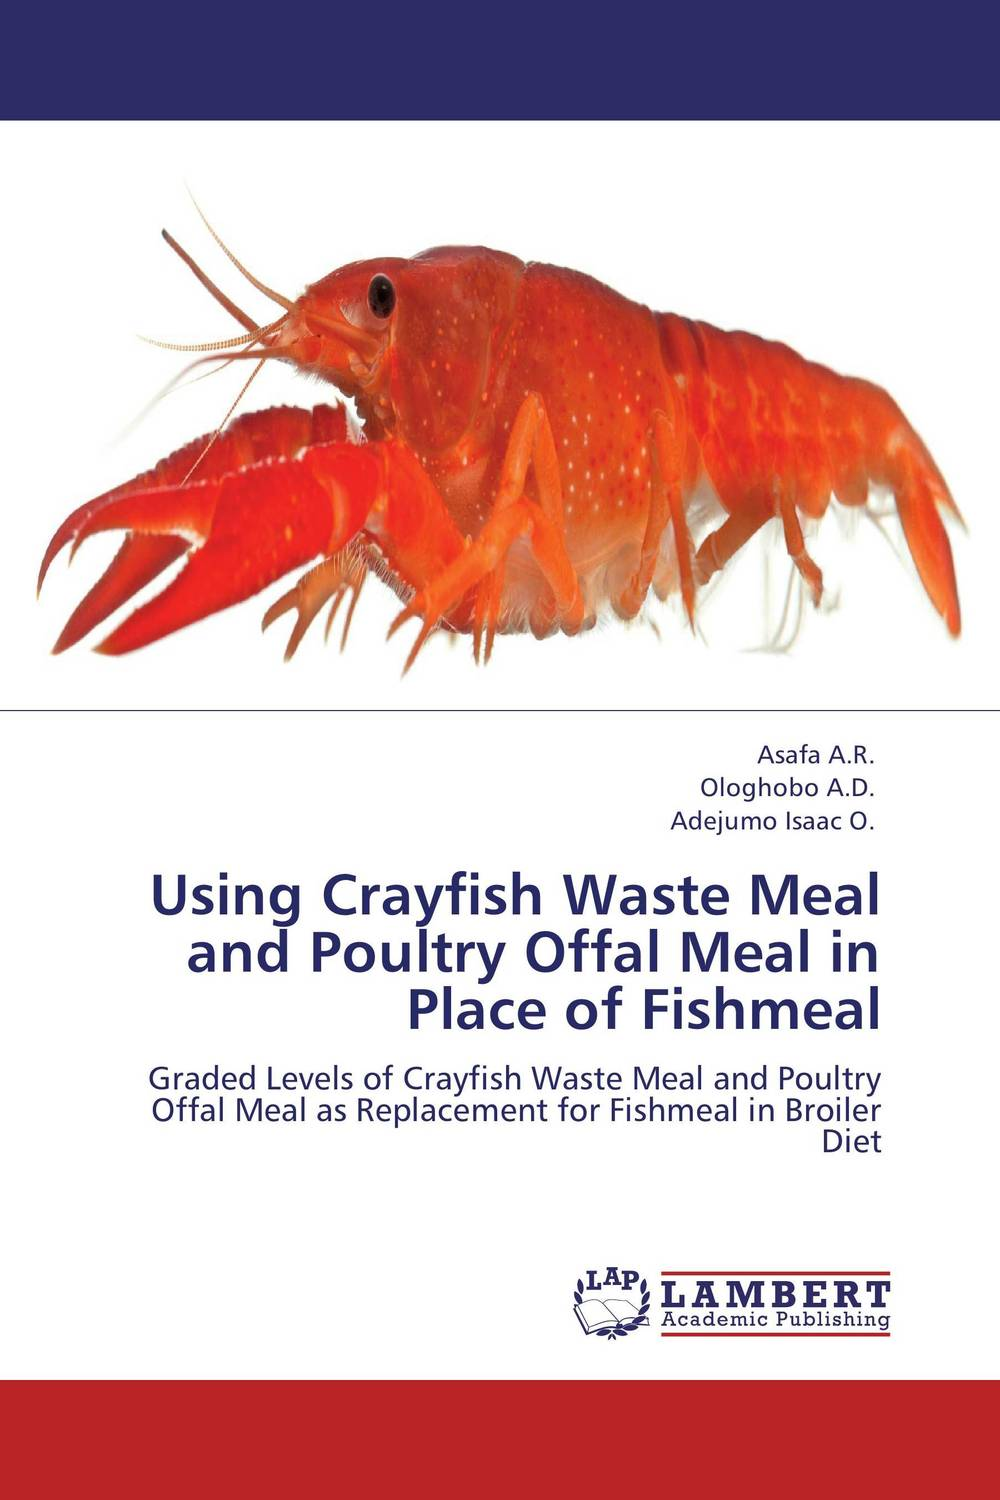 Using Crayfish Waste Meal and Poultry Offal Meal in Place of Fishmeal using crayfish waste meal and poultry offal meal in place of fishmeal